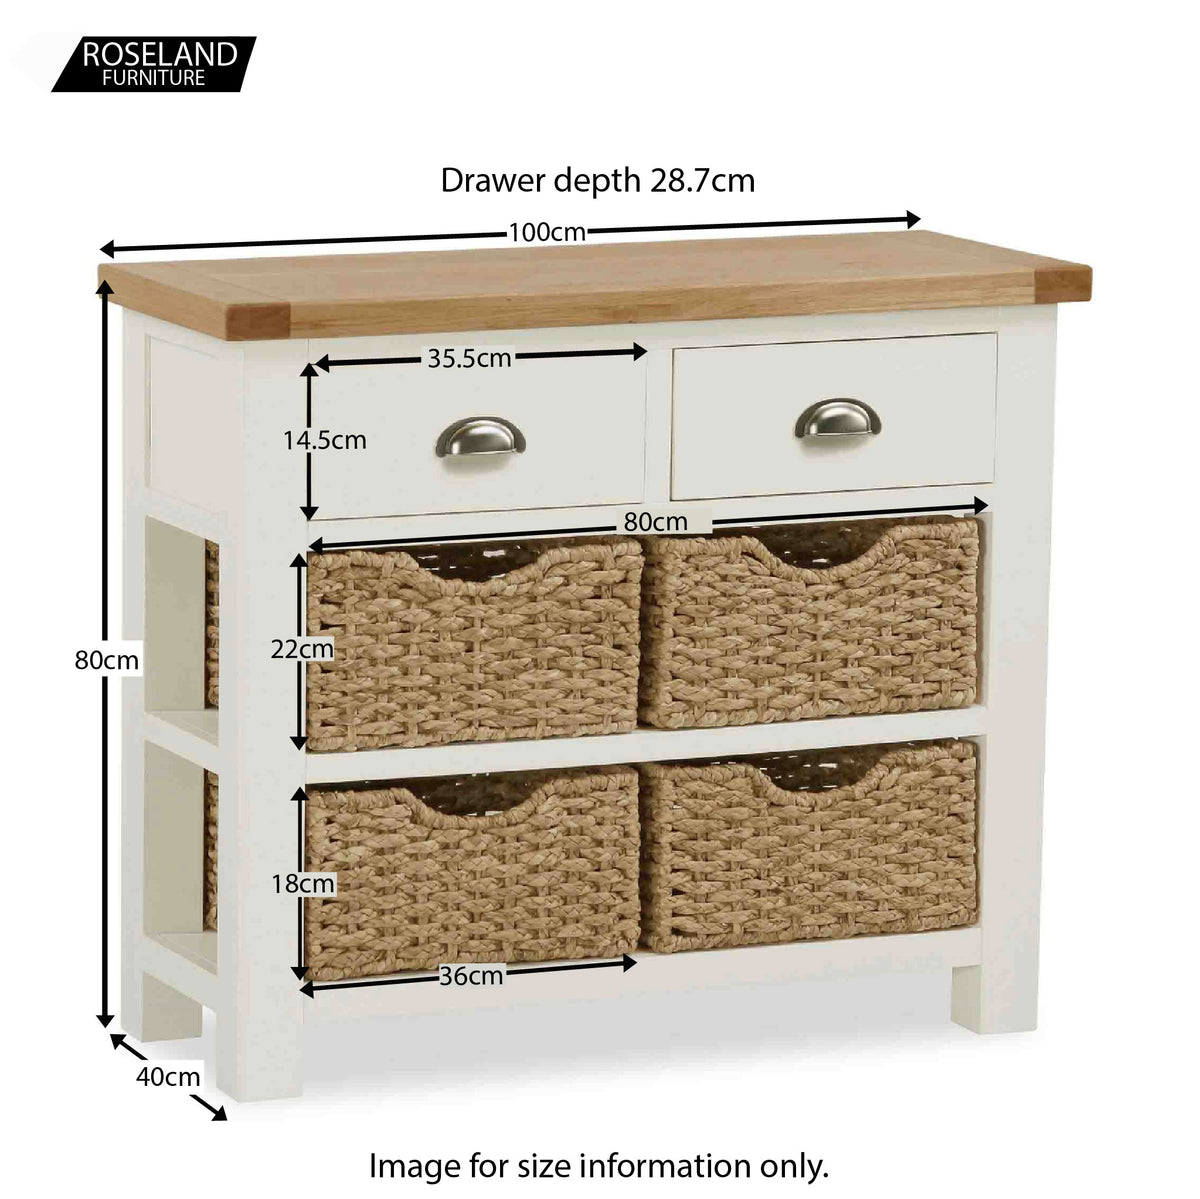 Daymer Cream Console Table with Drawers and Baskets - Size Guide